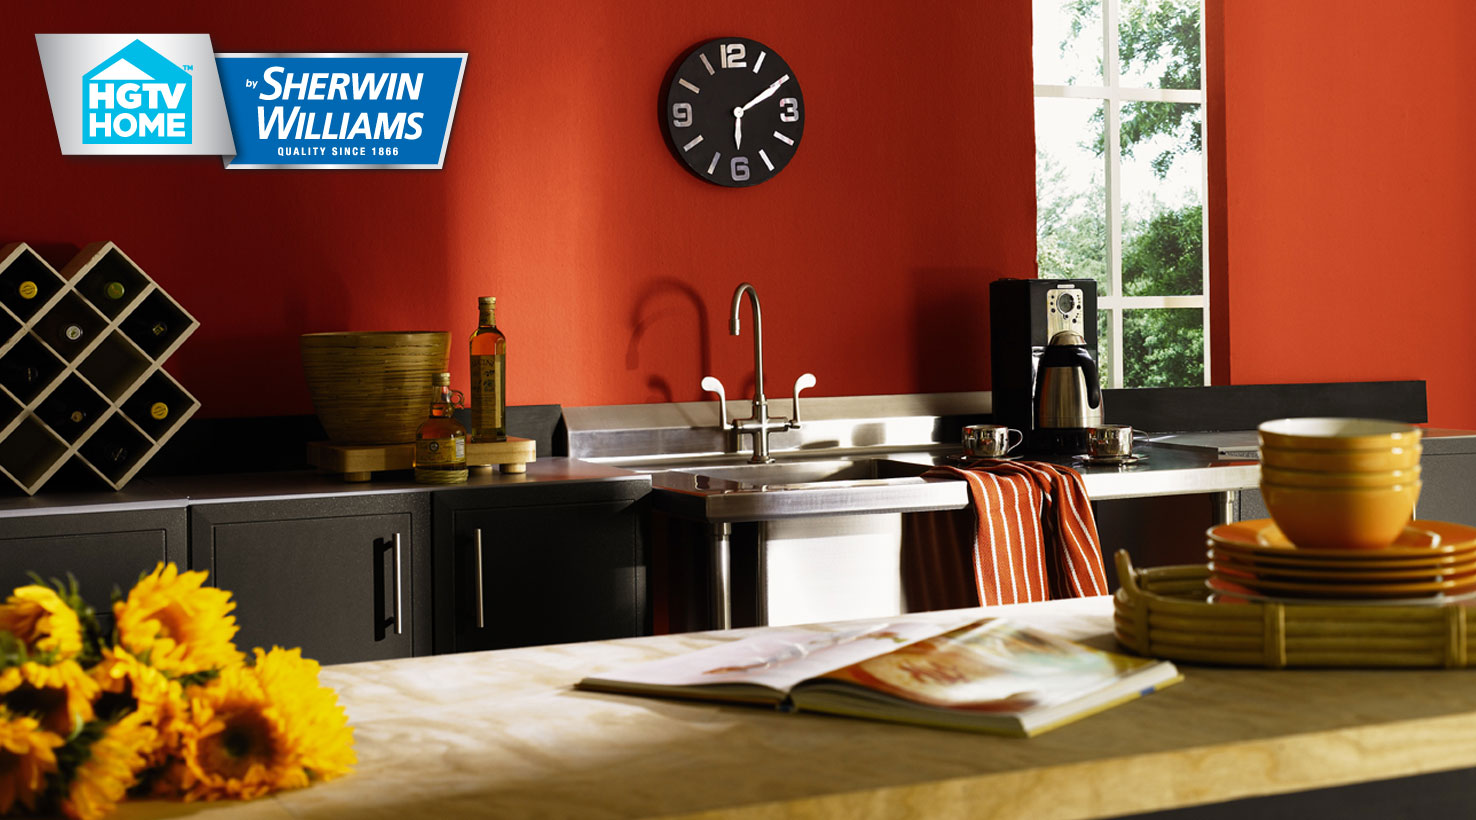 Sherwin-williams Countertop Paint Global Spice Paint Color Collection Hgtv Home By Sherwin Williams